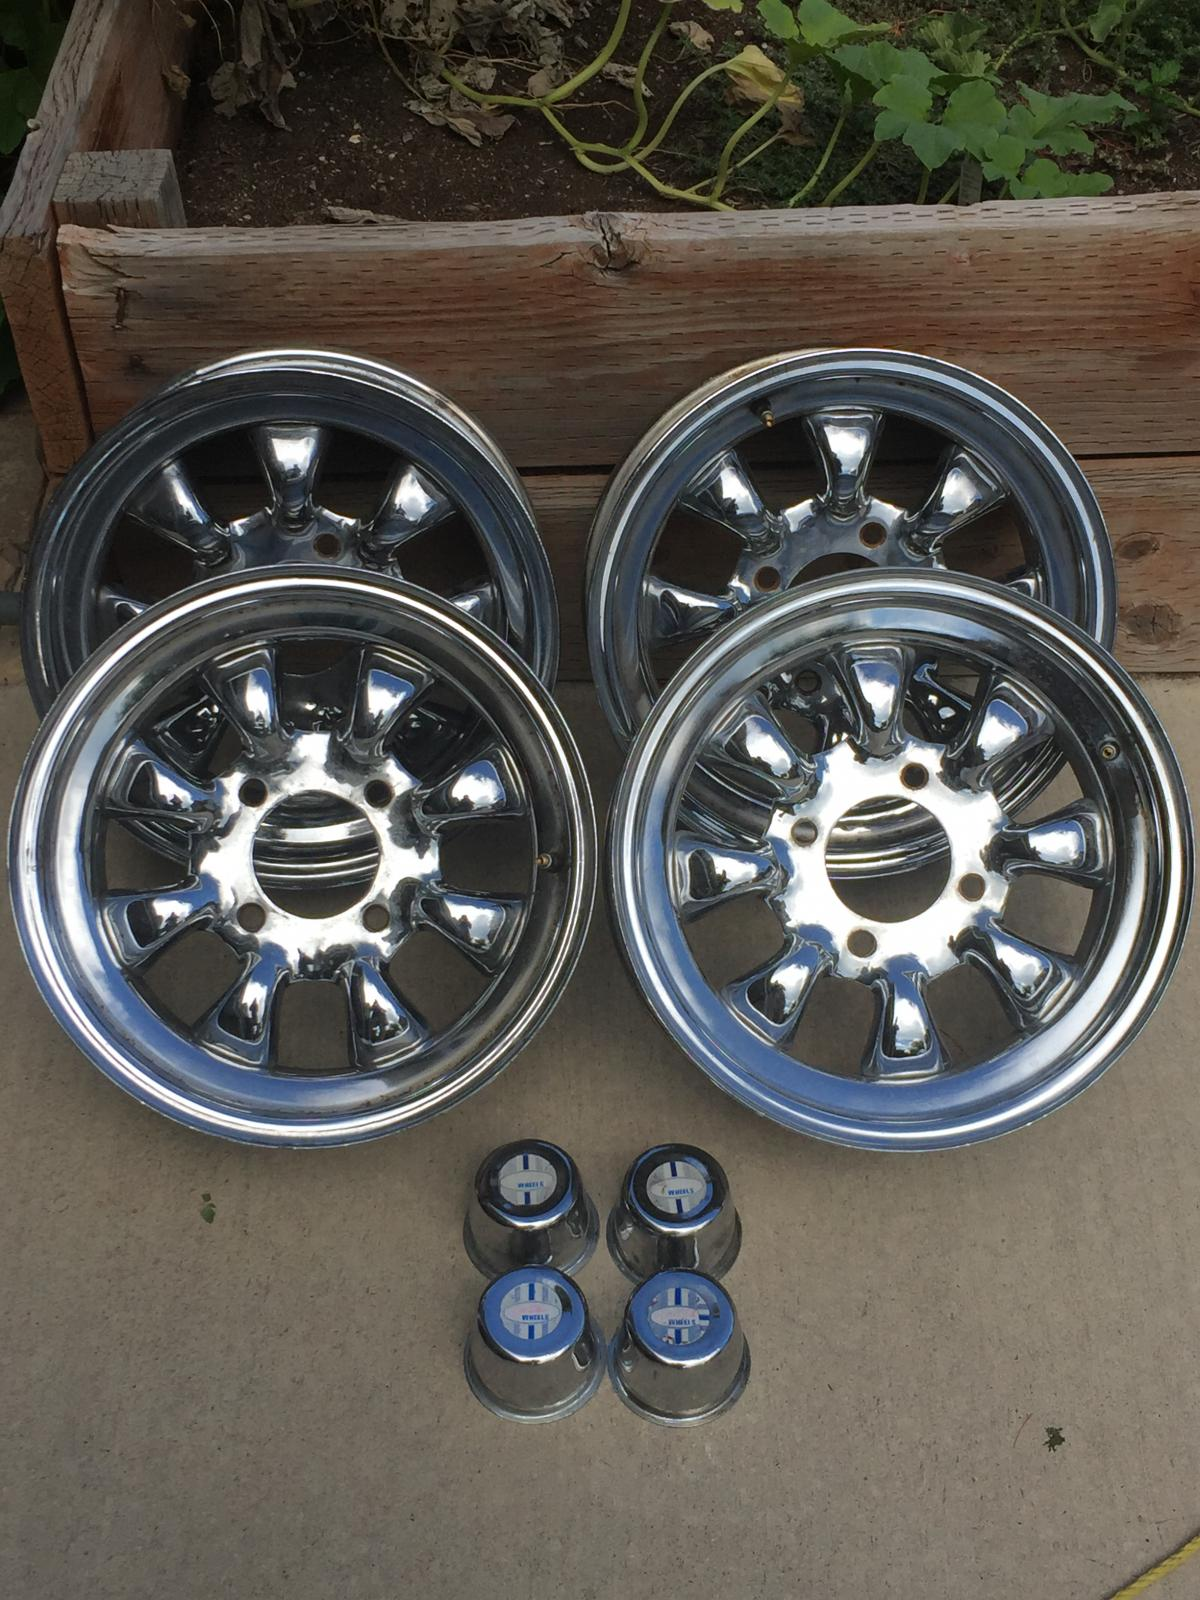 8 spoked Smiths Wheels. Set of 4 with Caps